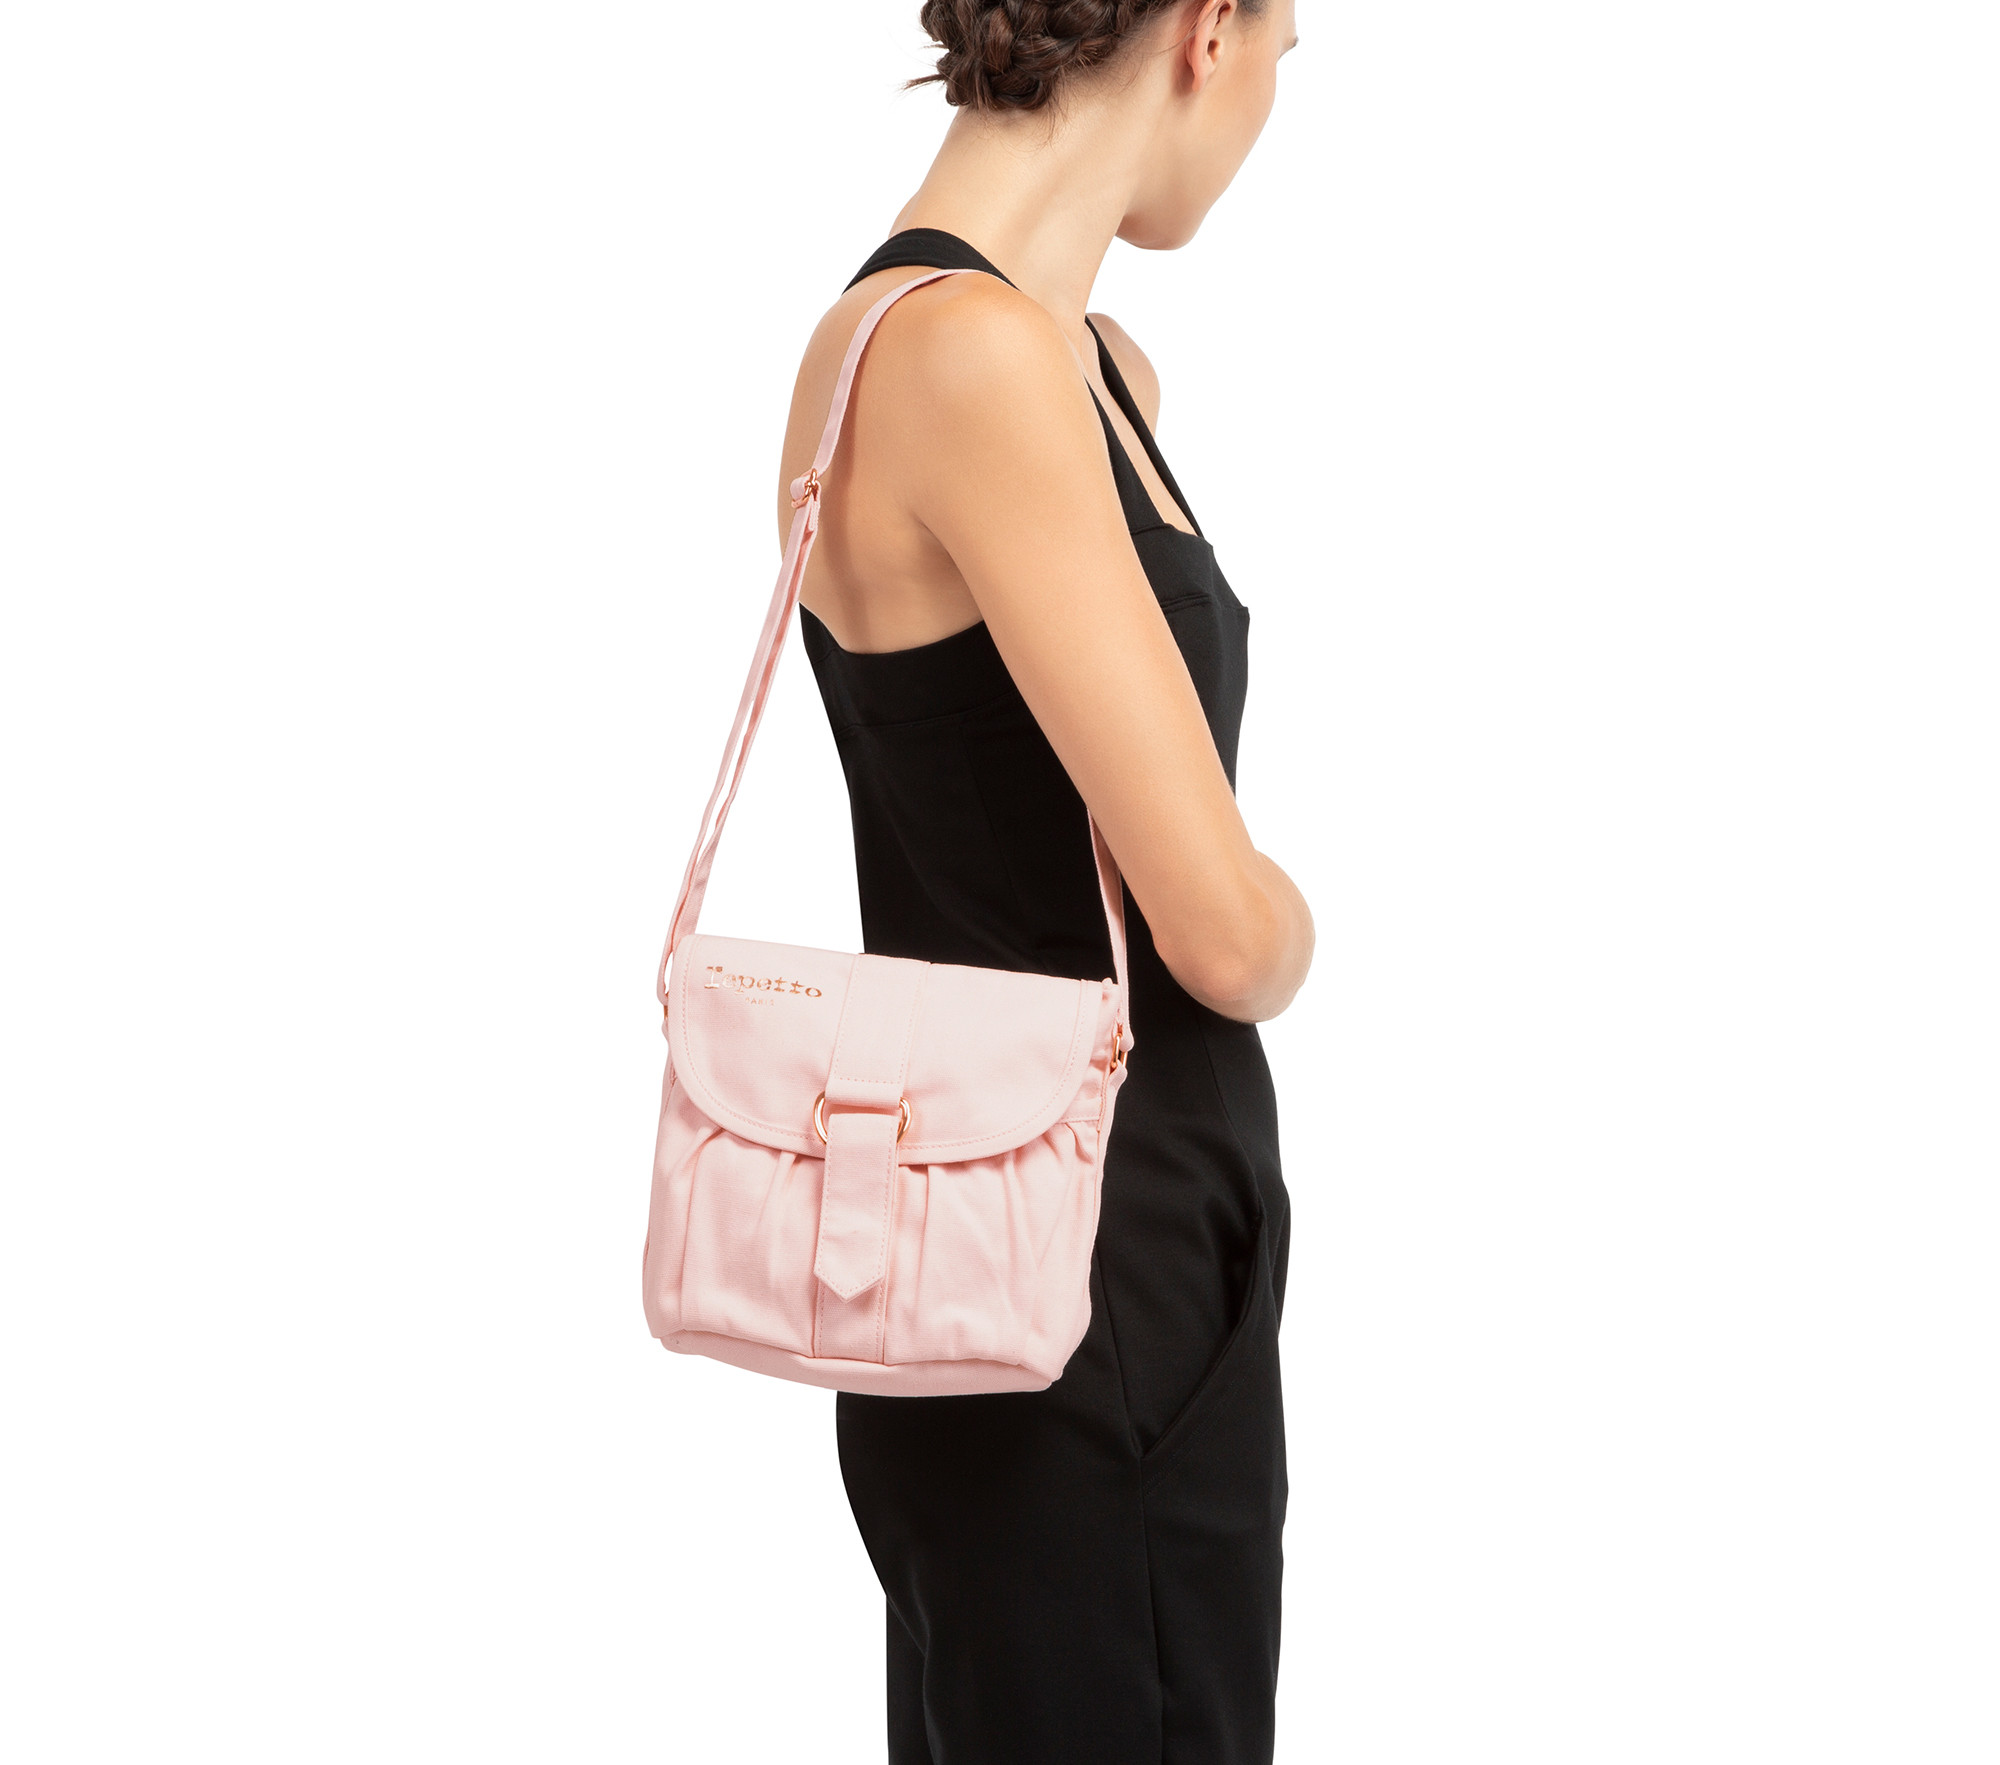 Pirouette shoulder bag